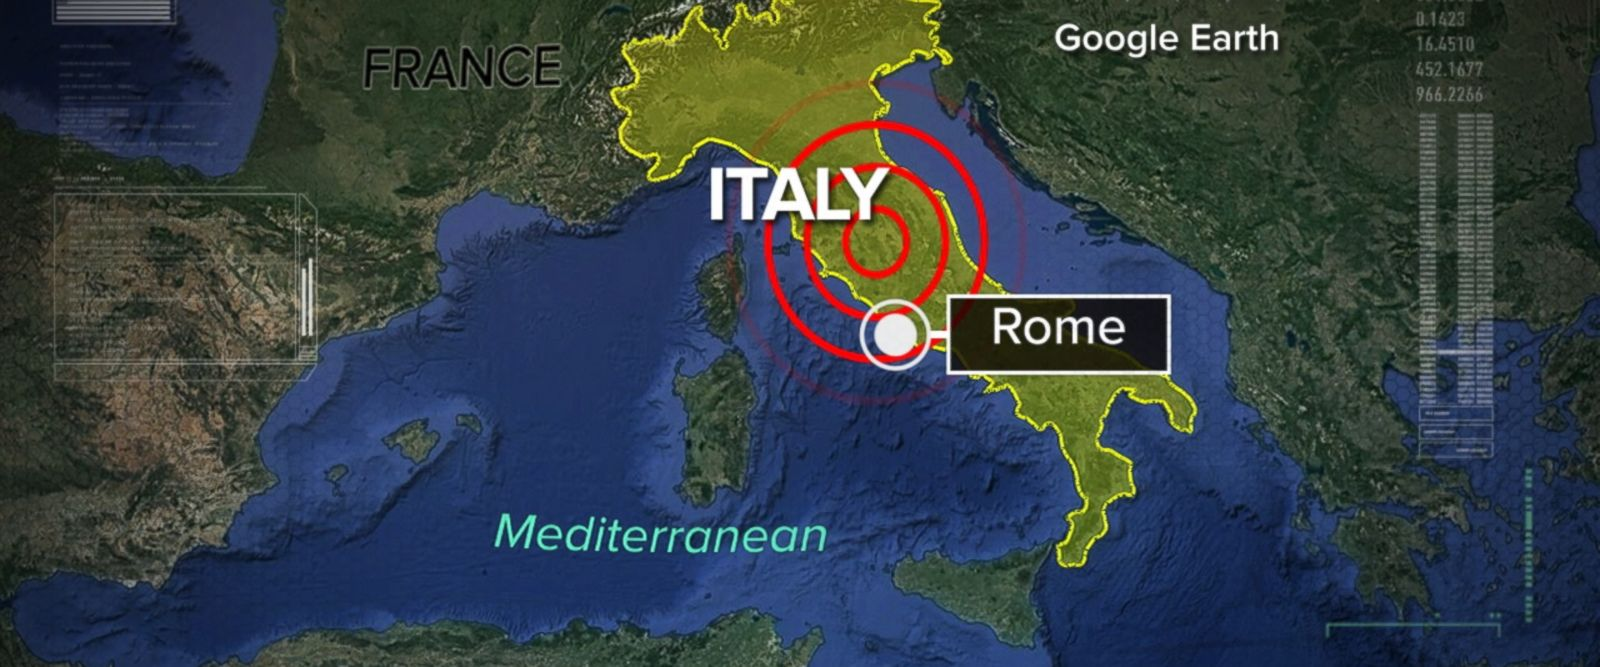 VIDEO: A 5.3-magnitude earthquake struck central Italy on Wednesday morning, a representative from the Civil Protection Department confirmed on Italy's RAI TV.